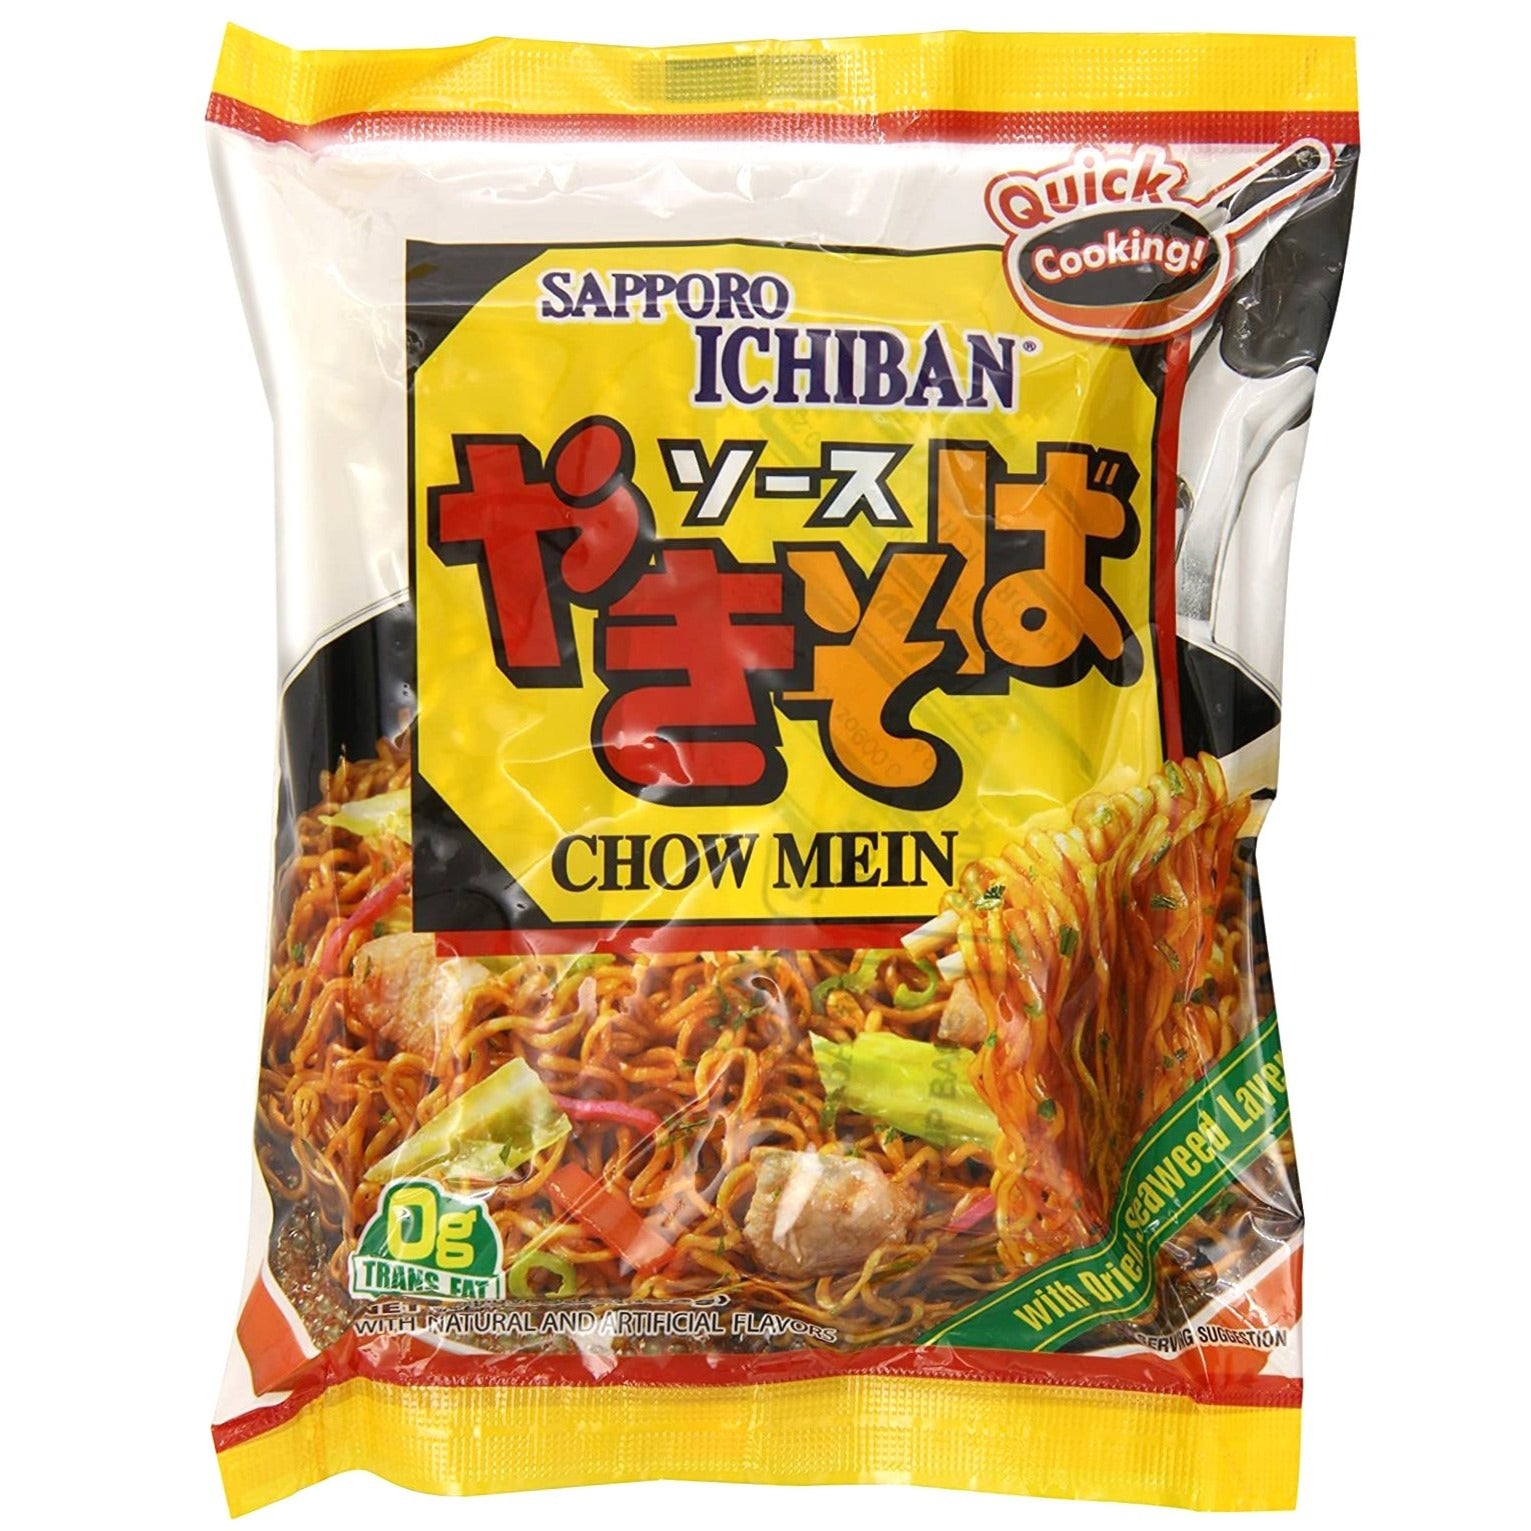 Sapporo Ichiban Chow Mein Yakisoba Japanese Style Noodles 3.6 Oz (102 g) Packages (Pack of 24)